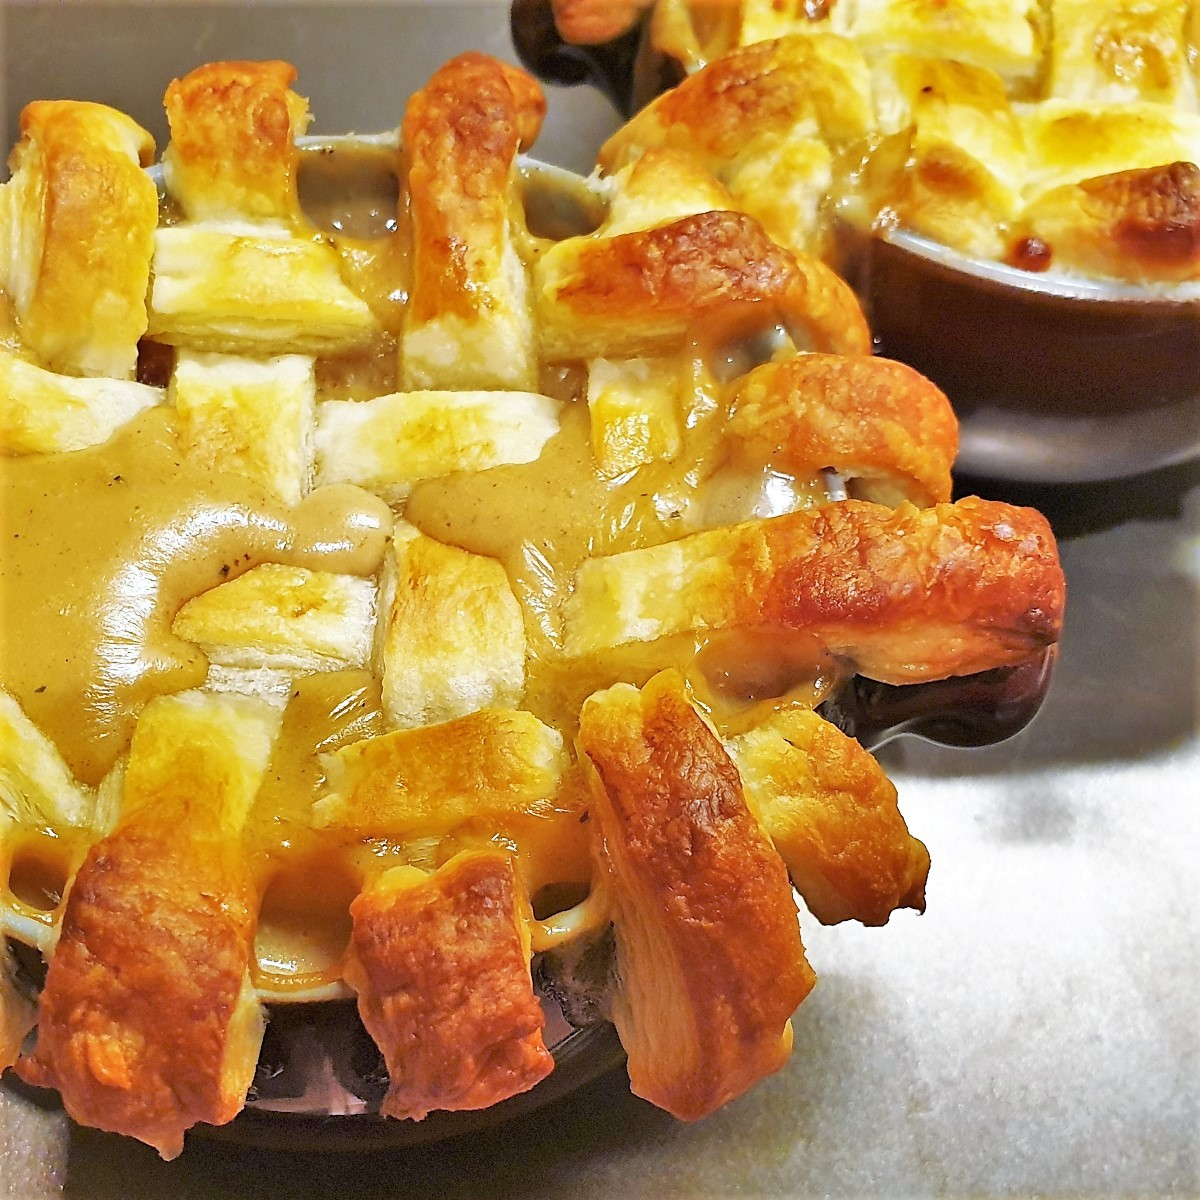 A beef pot pie topped with a lattice of puff pastry showing the gravy soaking through.